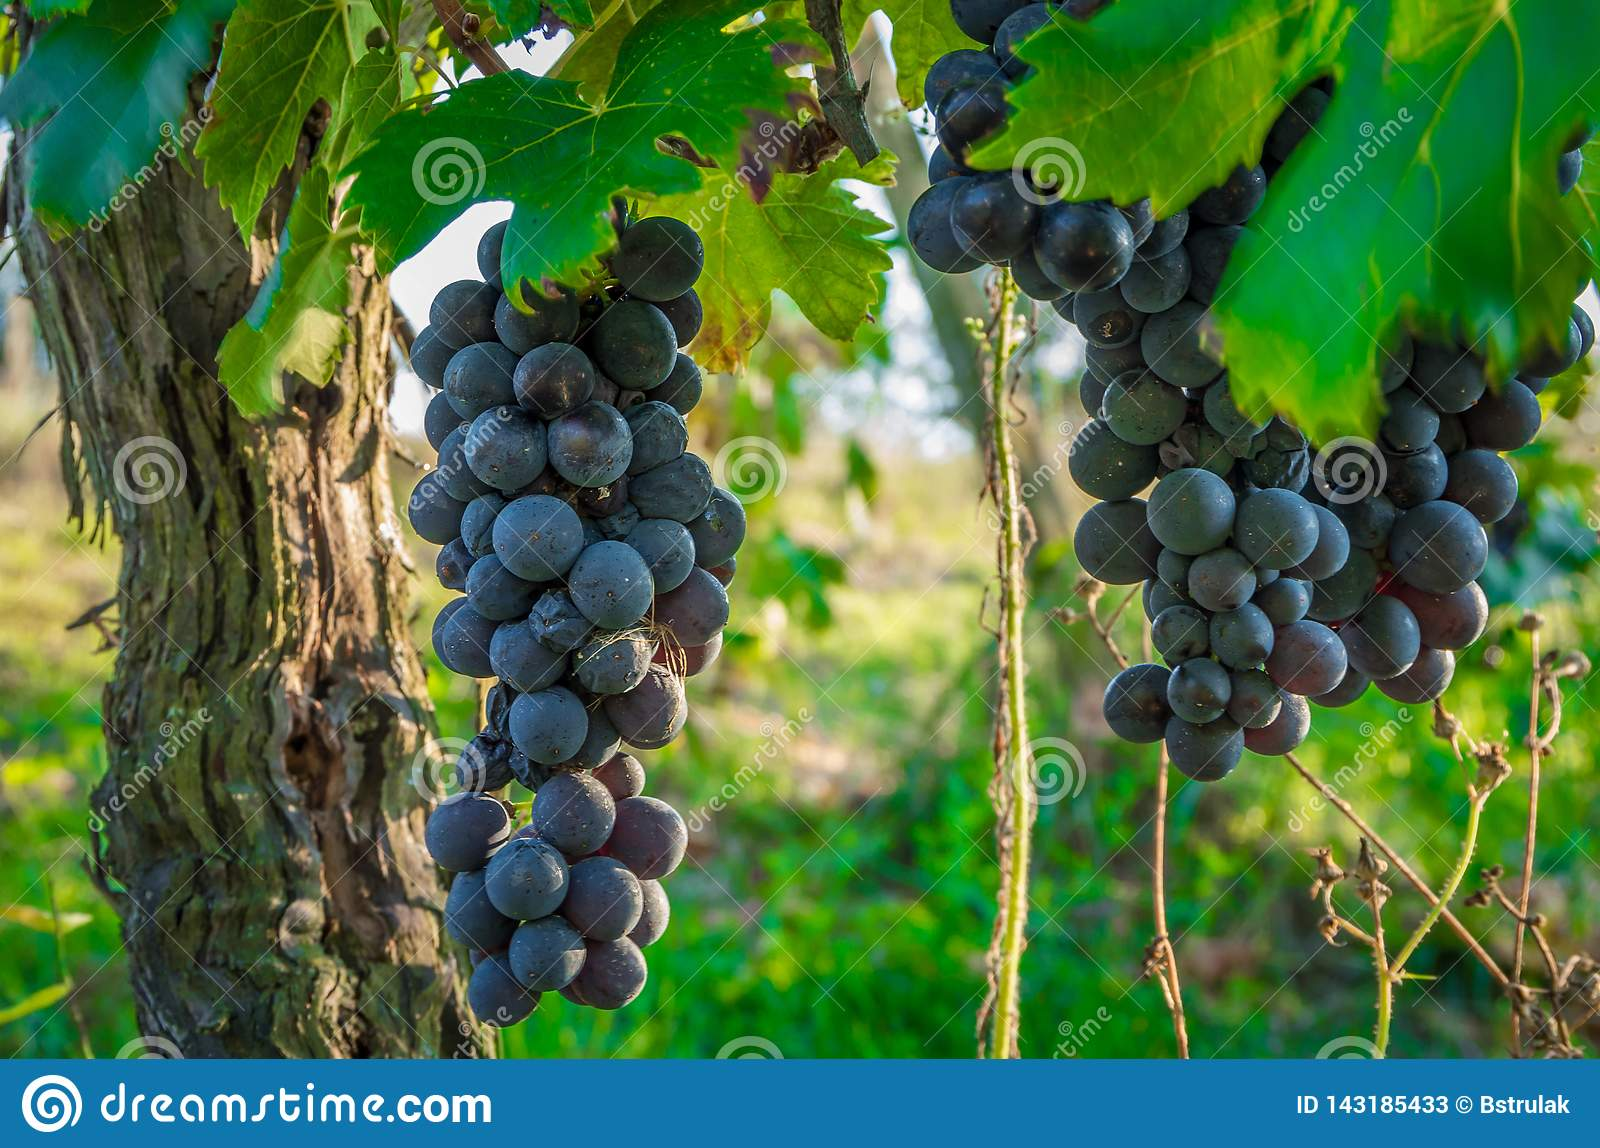 Branches of red wine grapes growing in Italian fields. Close up view of fresh red wine grape in Italy. Vineyard view with big red